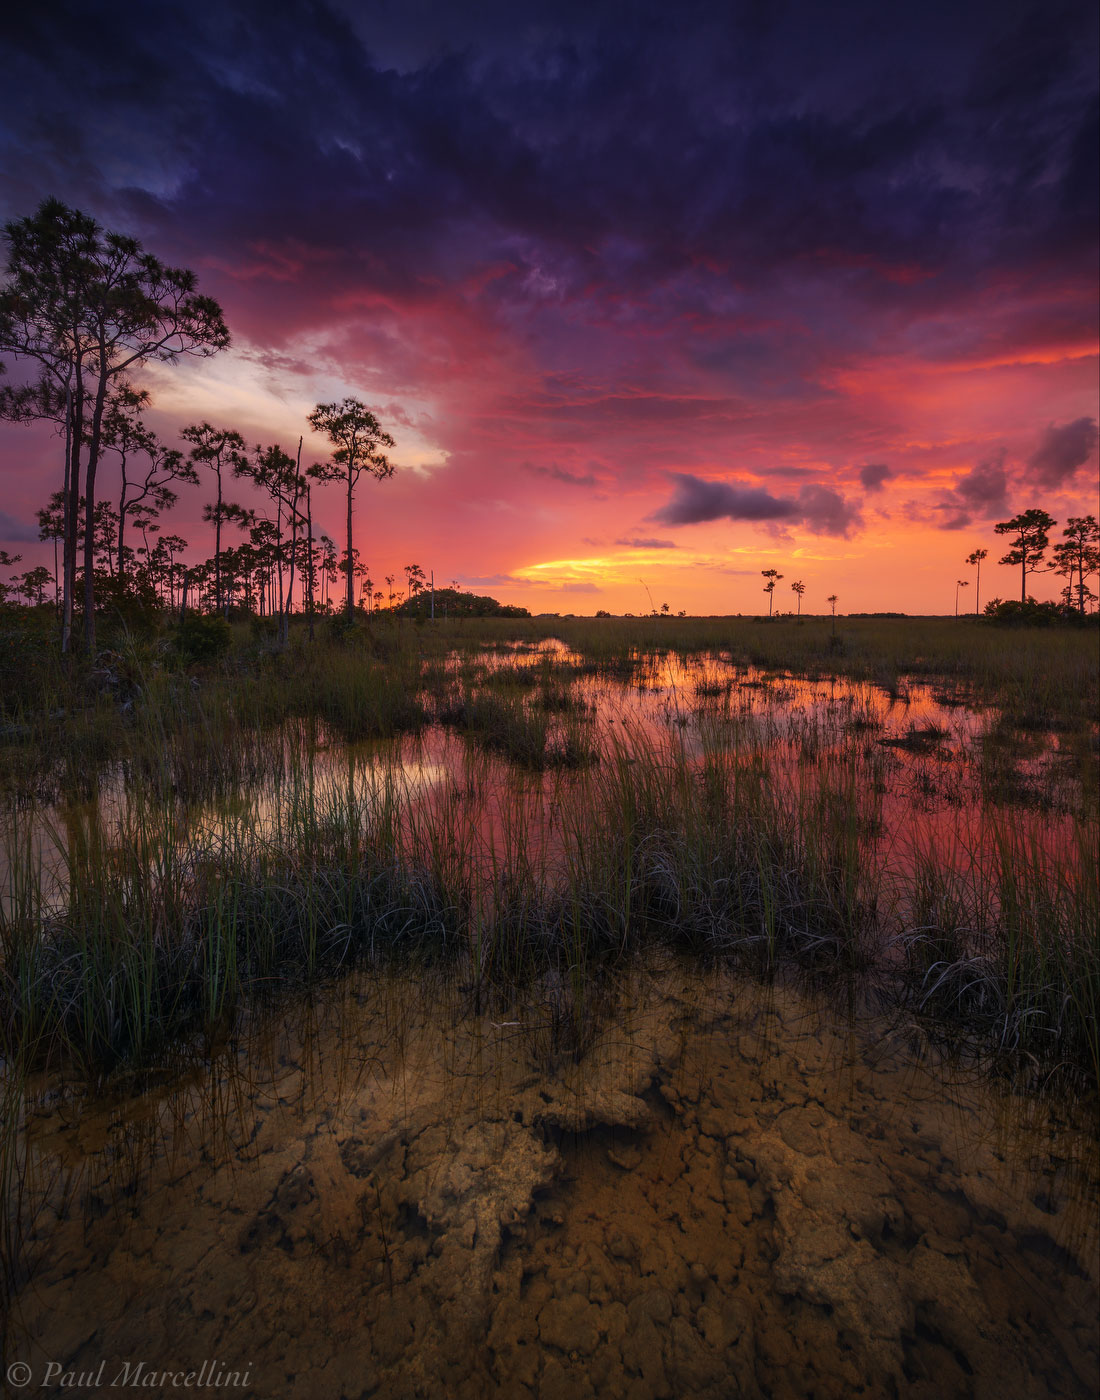 Everglades National Park, Florida, pineland, sunset, rocky pinelands, nature, photography, florida national parks, photo